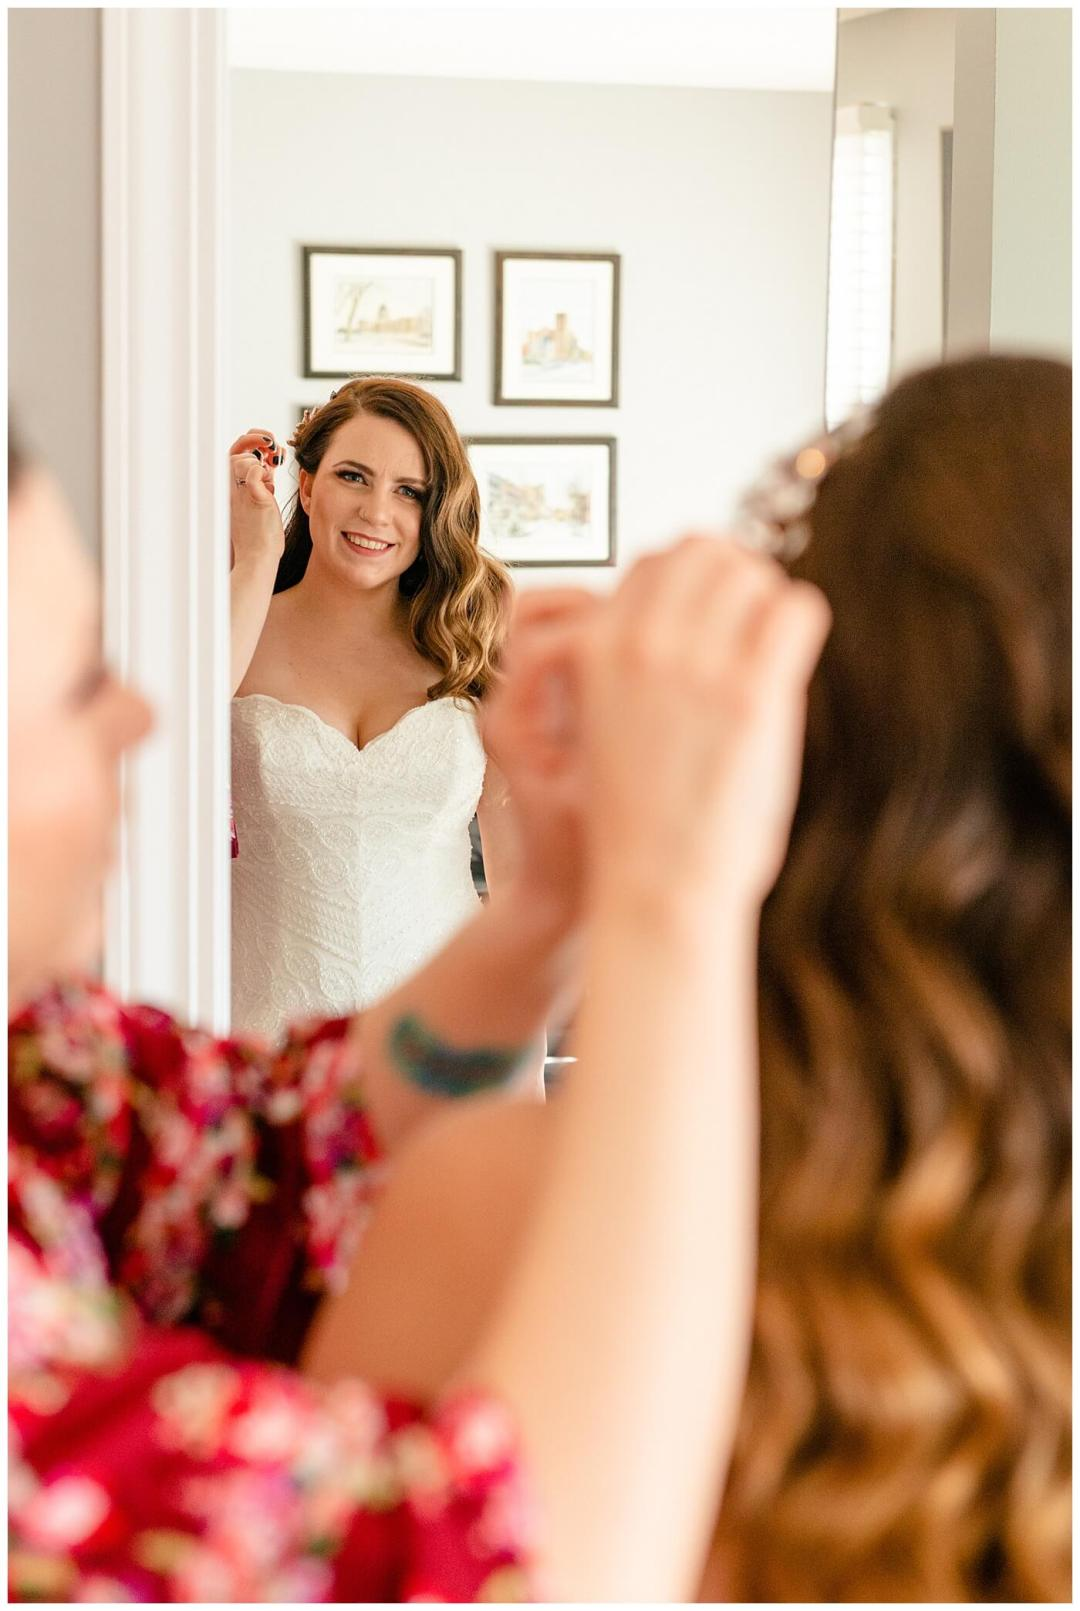 Regina Wedding Photographer - Tim & Jennelle At Home Wedding - Bride final touches with hair clip